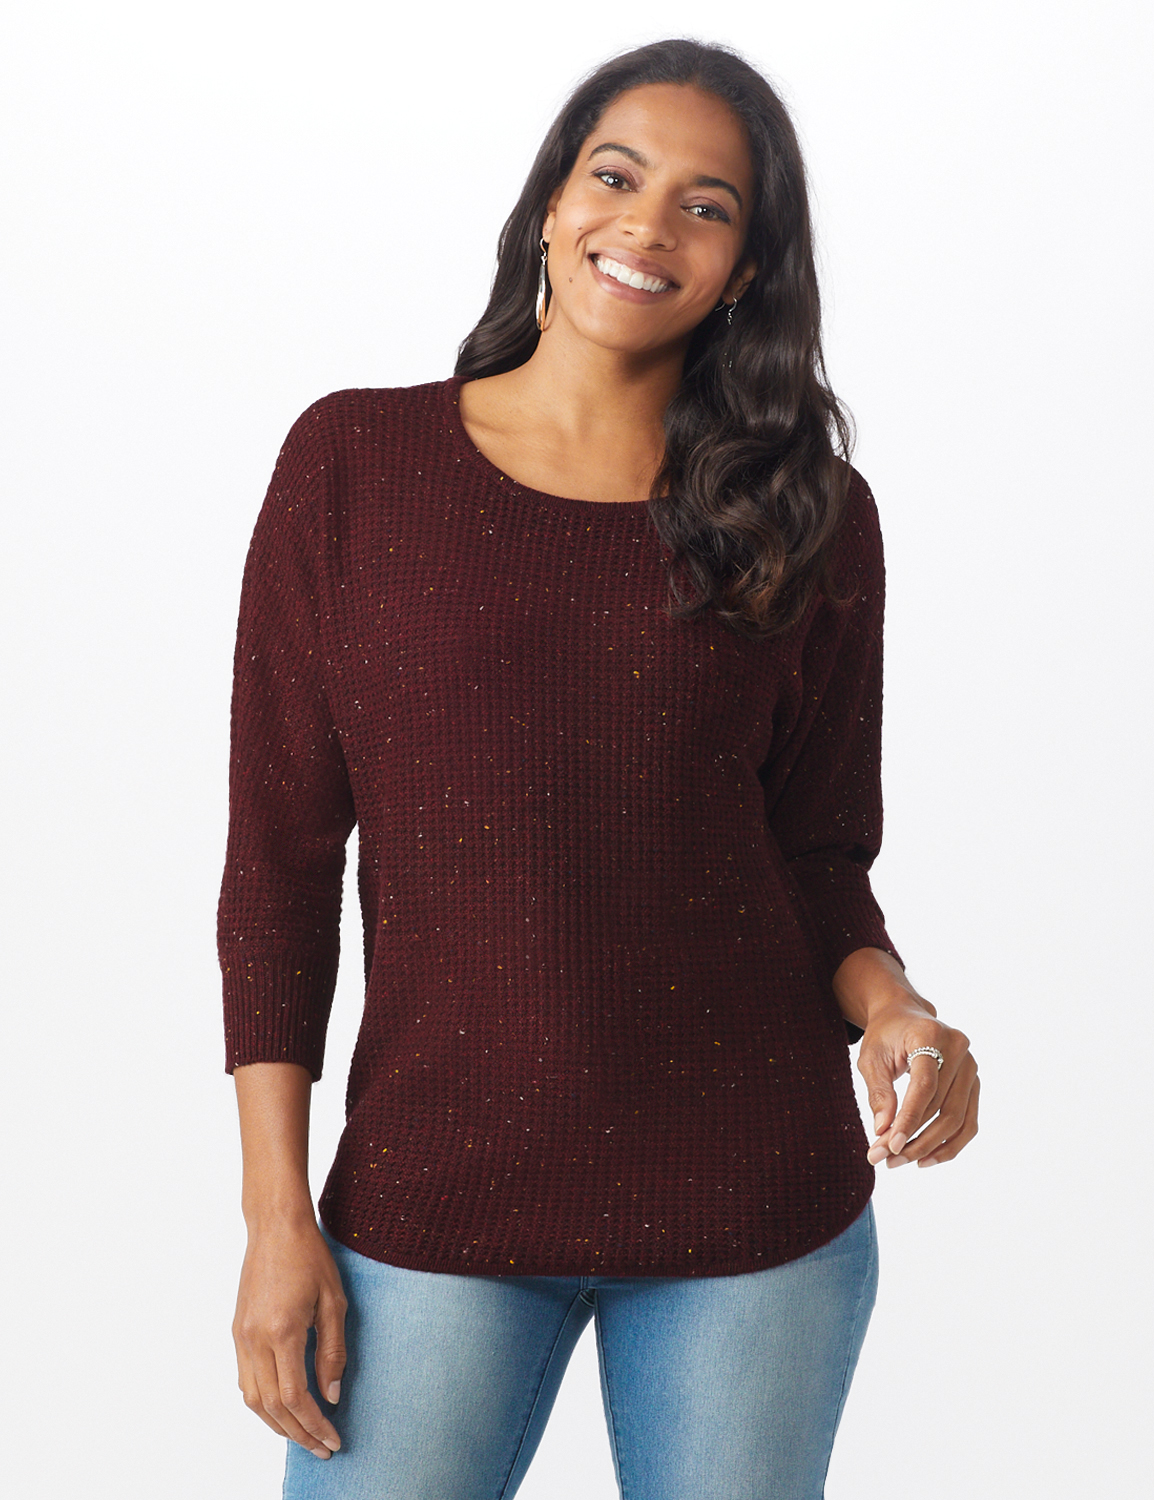 Westport Thermal Stitch Curved Hem Sweater - Misses -Florentine - Front